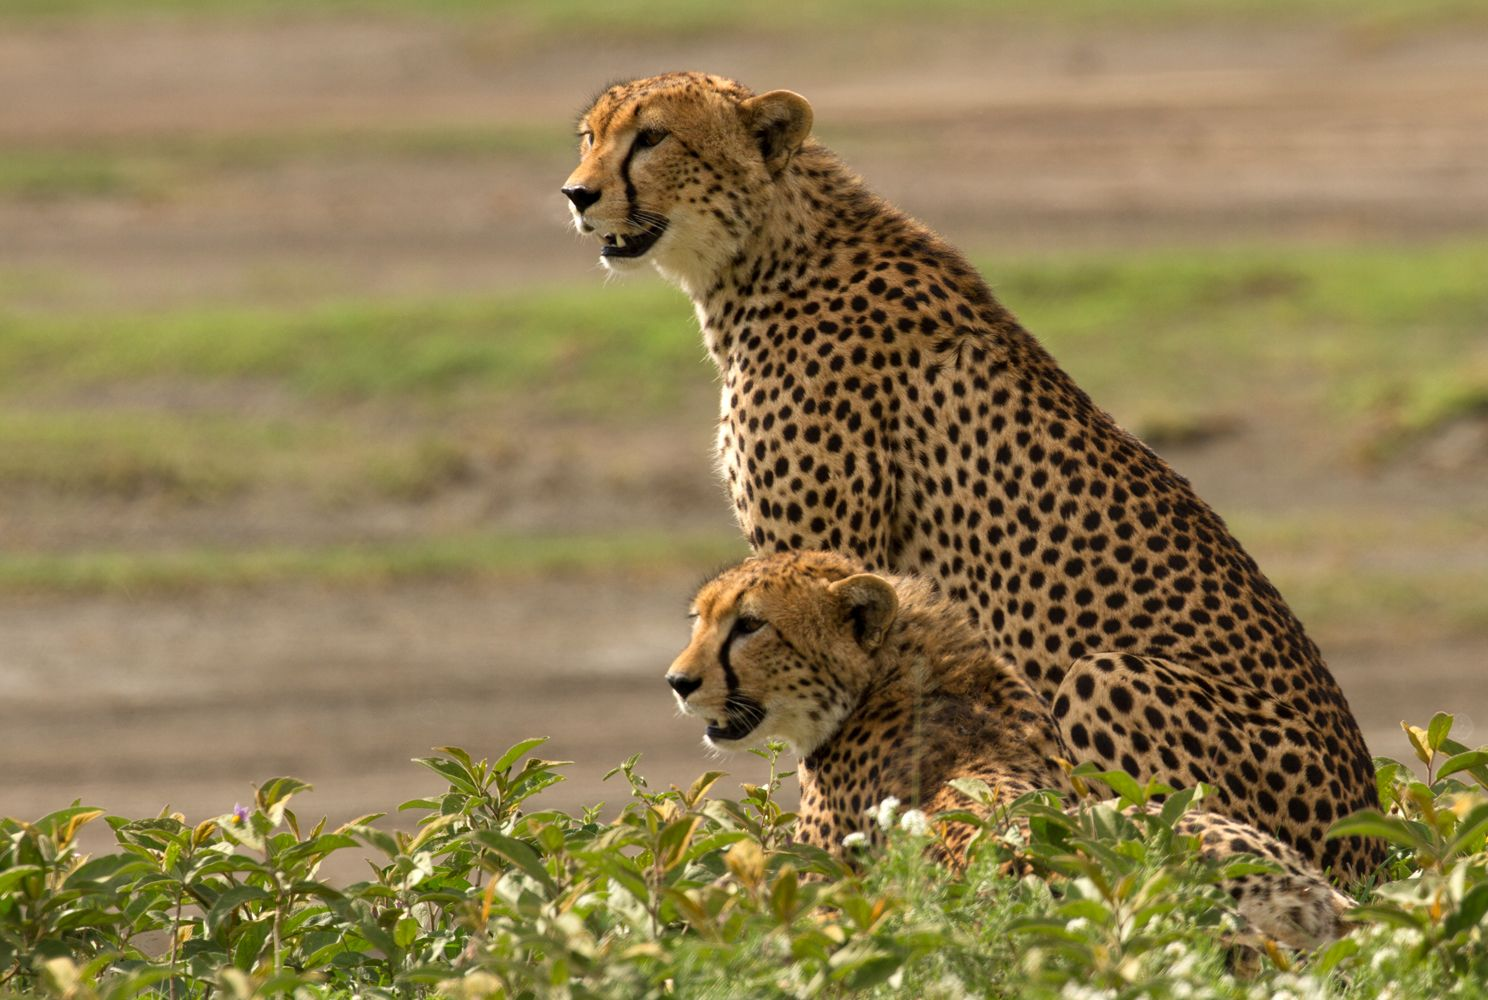 Two adult cheetahs in Tanzania